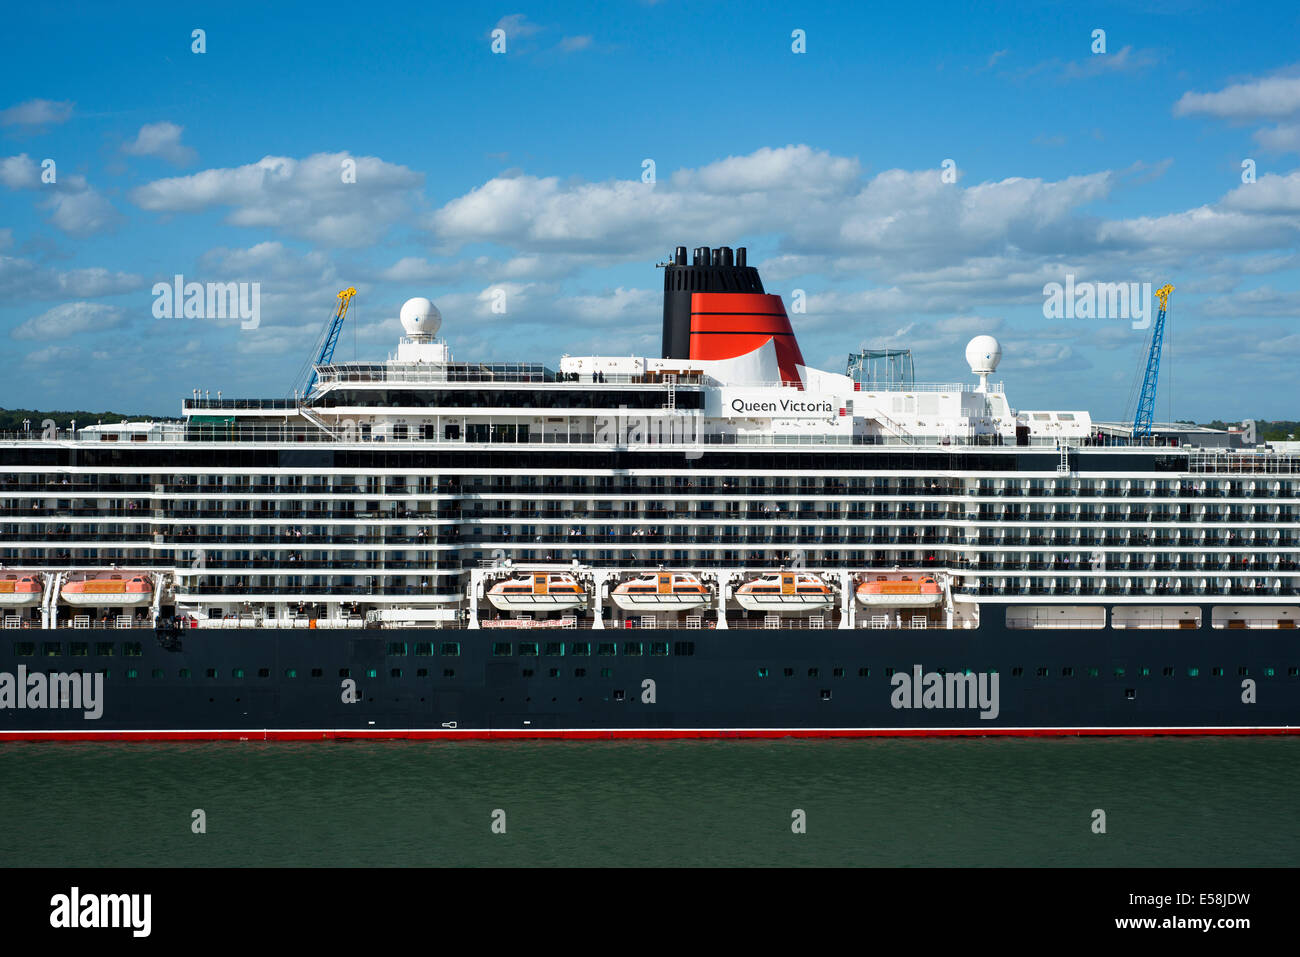 MS Queen Victoria docked at Southampton, Hampshire, England, United Kingdom Stock Photo